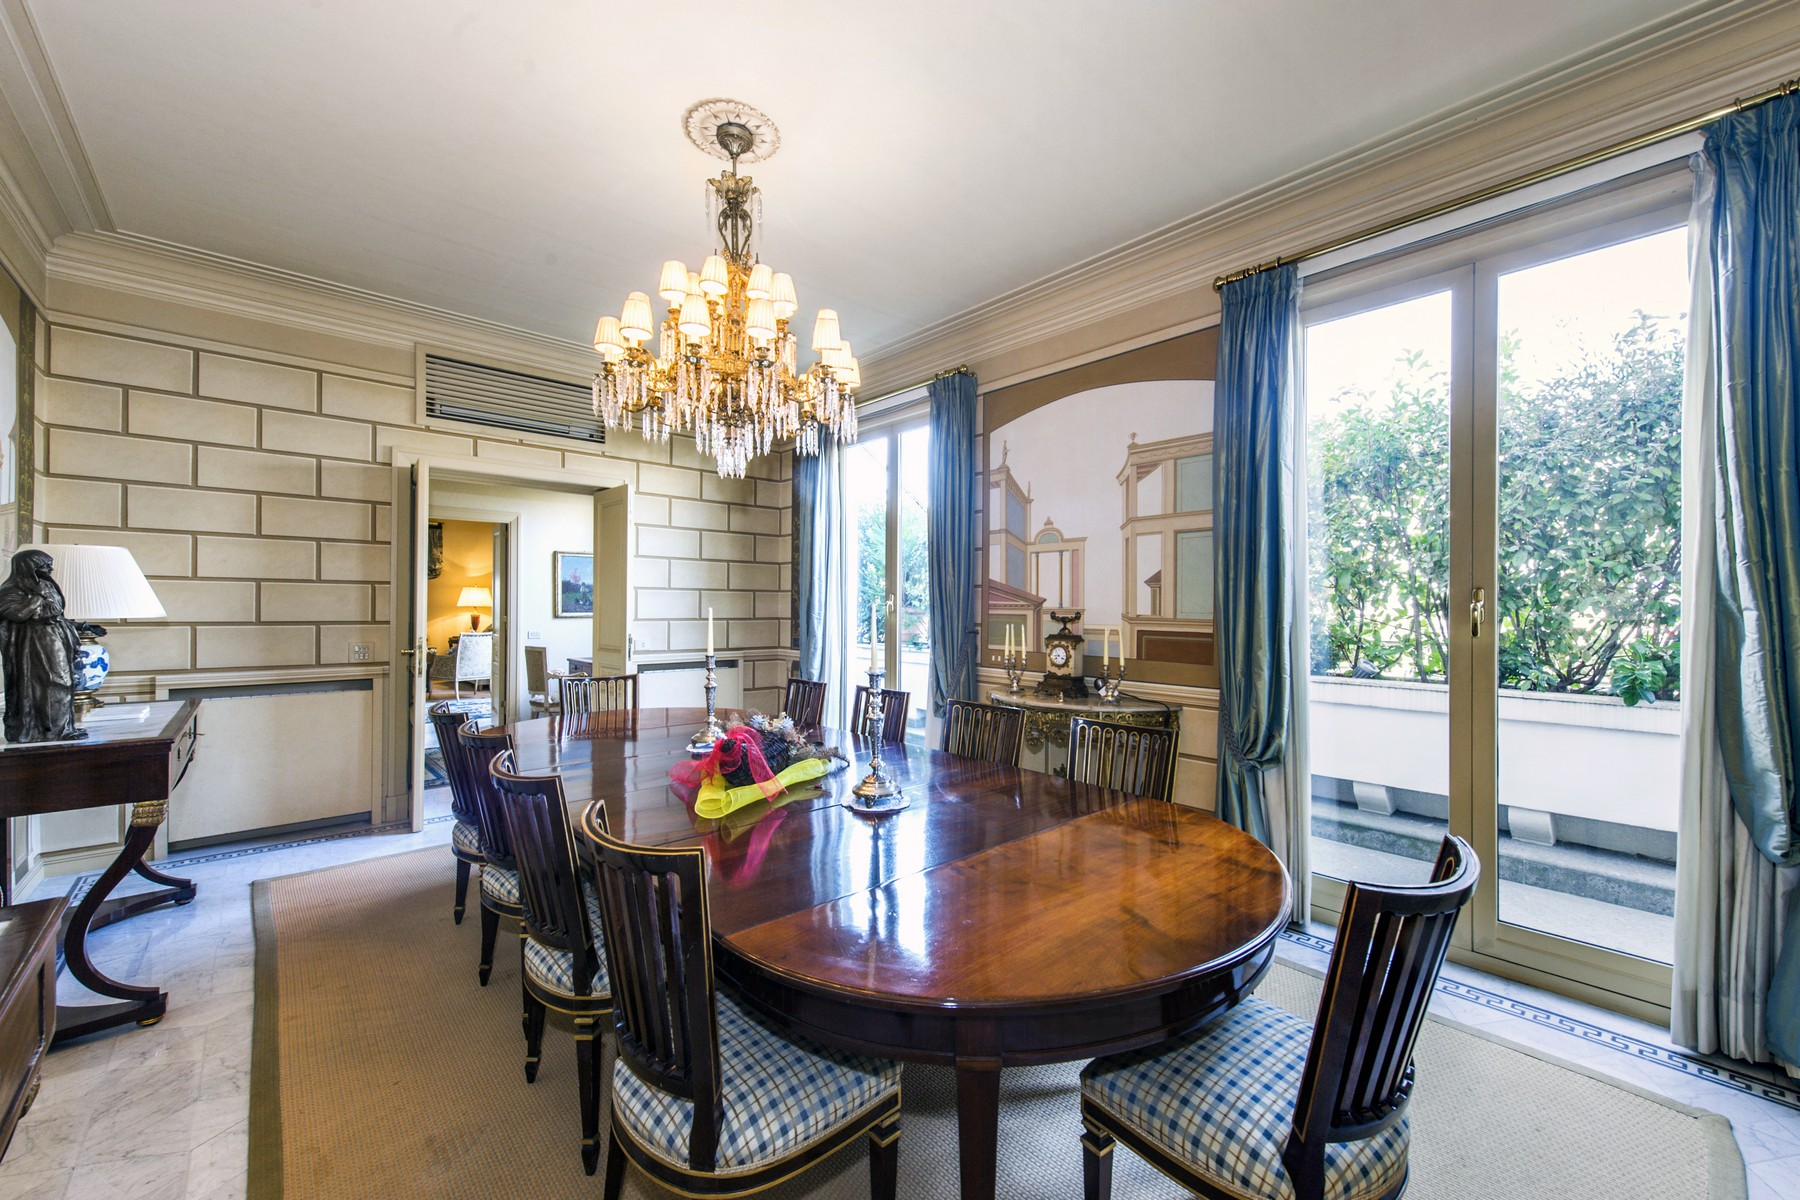 Additional photo for property listing at Stunning penthouse in the historical center Via Barberini Rome, Rome 00187 Italien